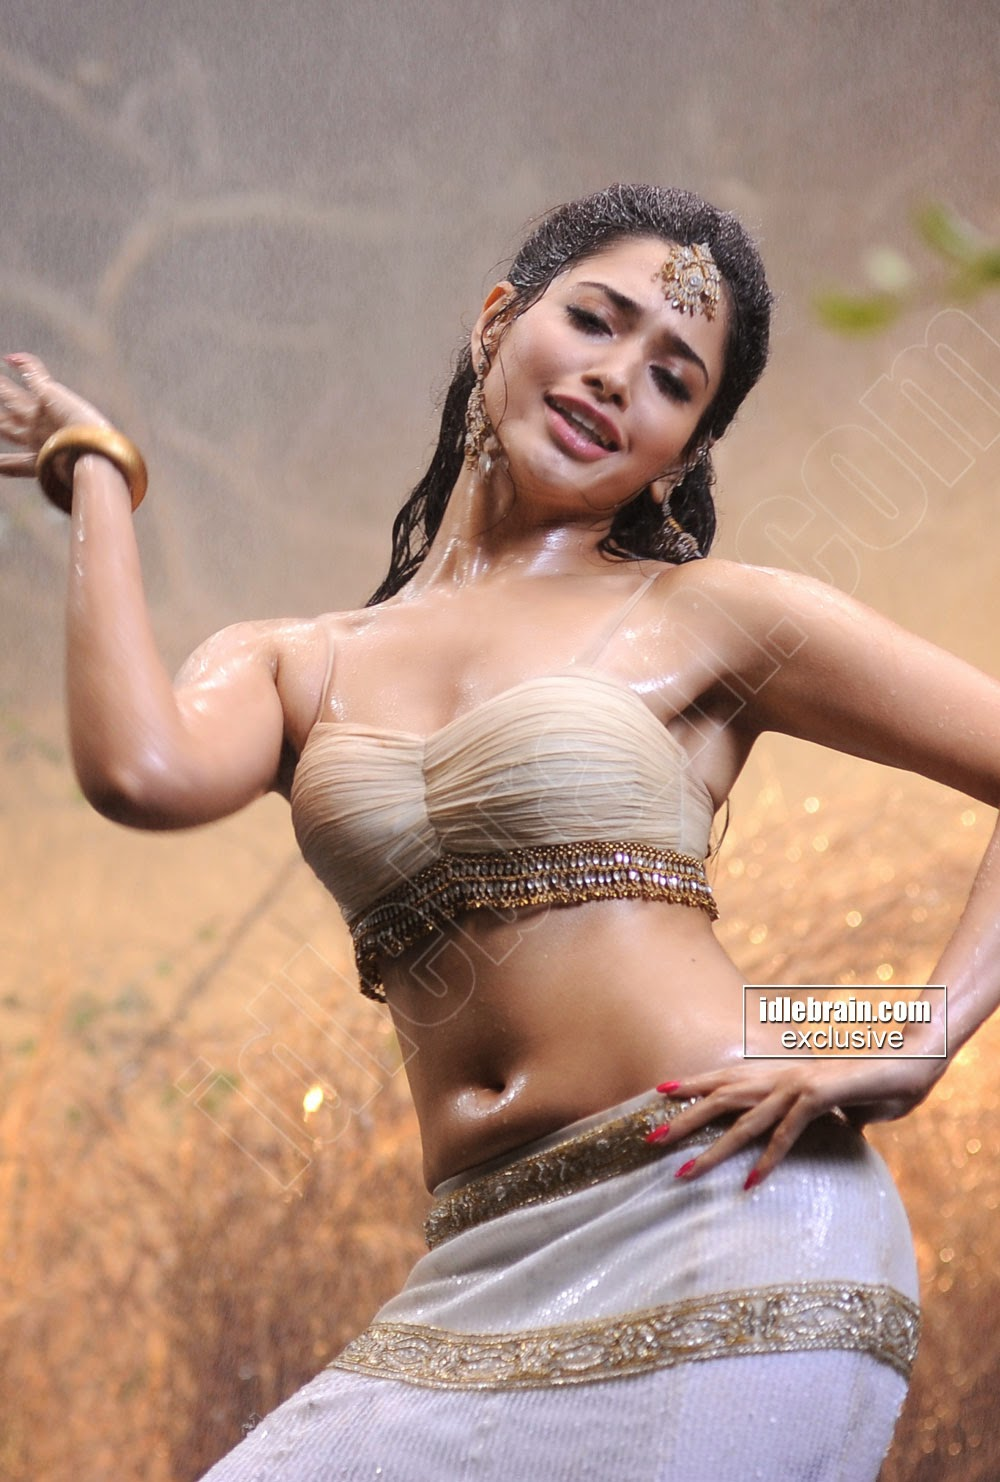 Naked pics from bengali movies nsfw videos